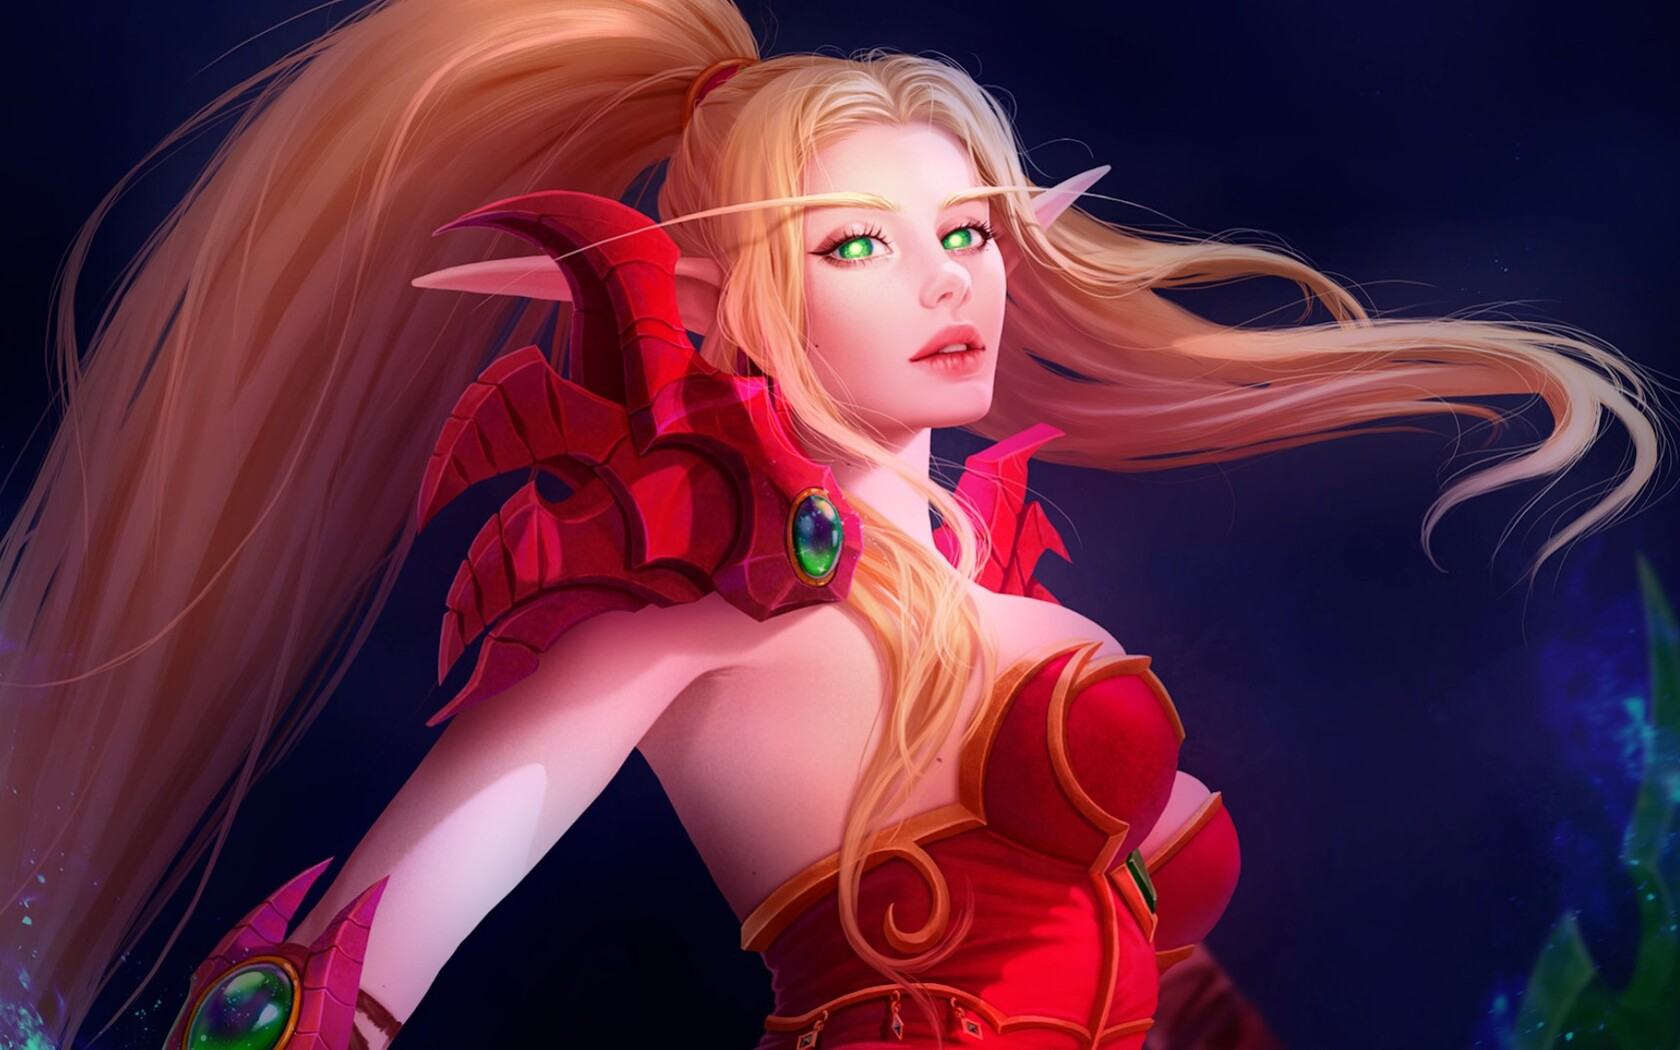 1680x1050 Blood Elf World Of Warcraft 1680x1050 Resolution